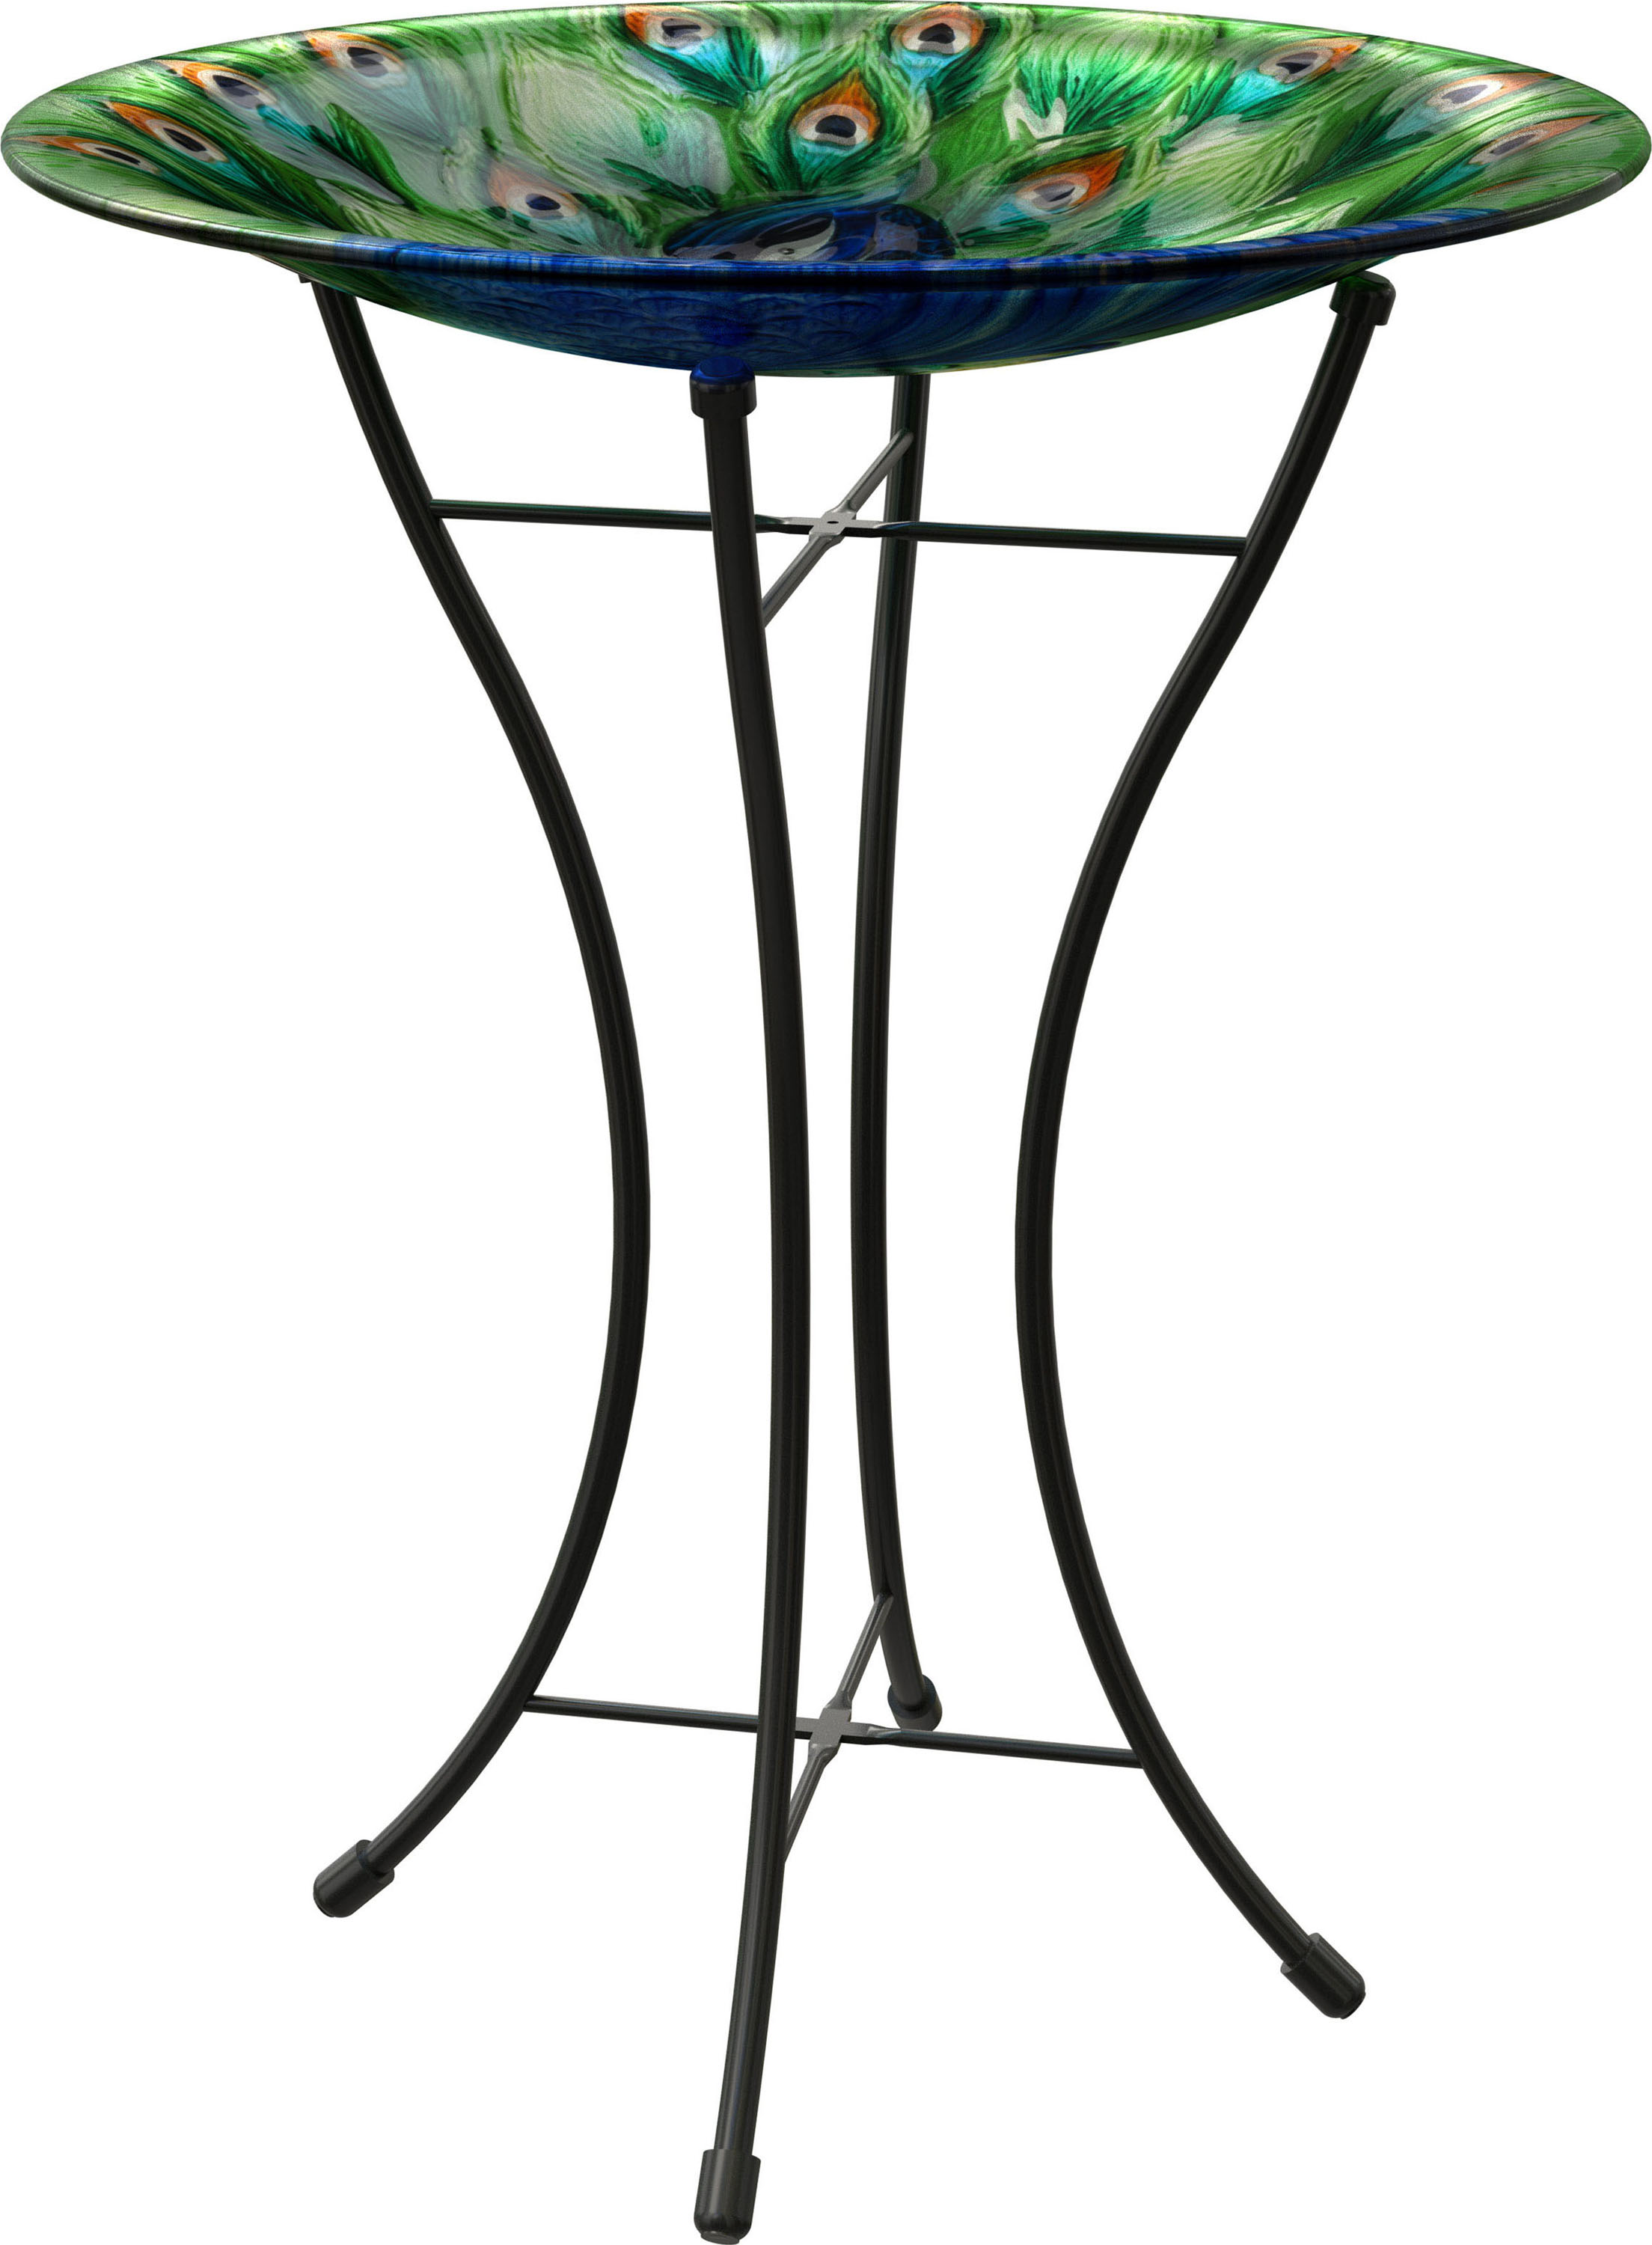 PEACOCK GLASS Birdbath WITH STAND by PANECEA